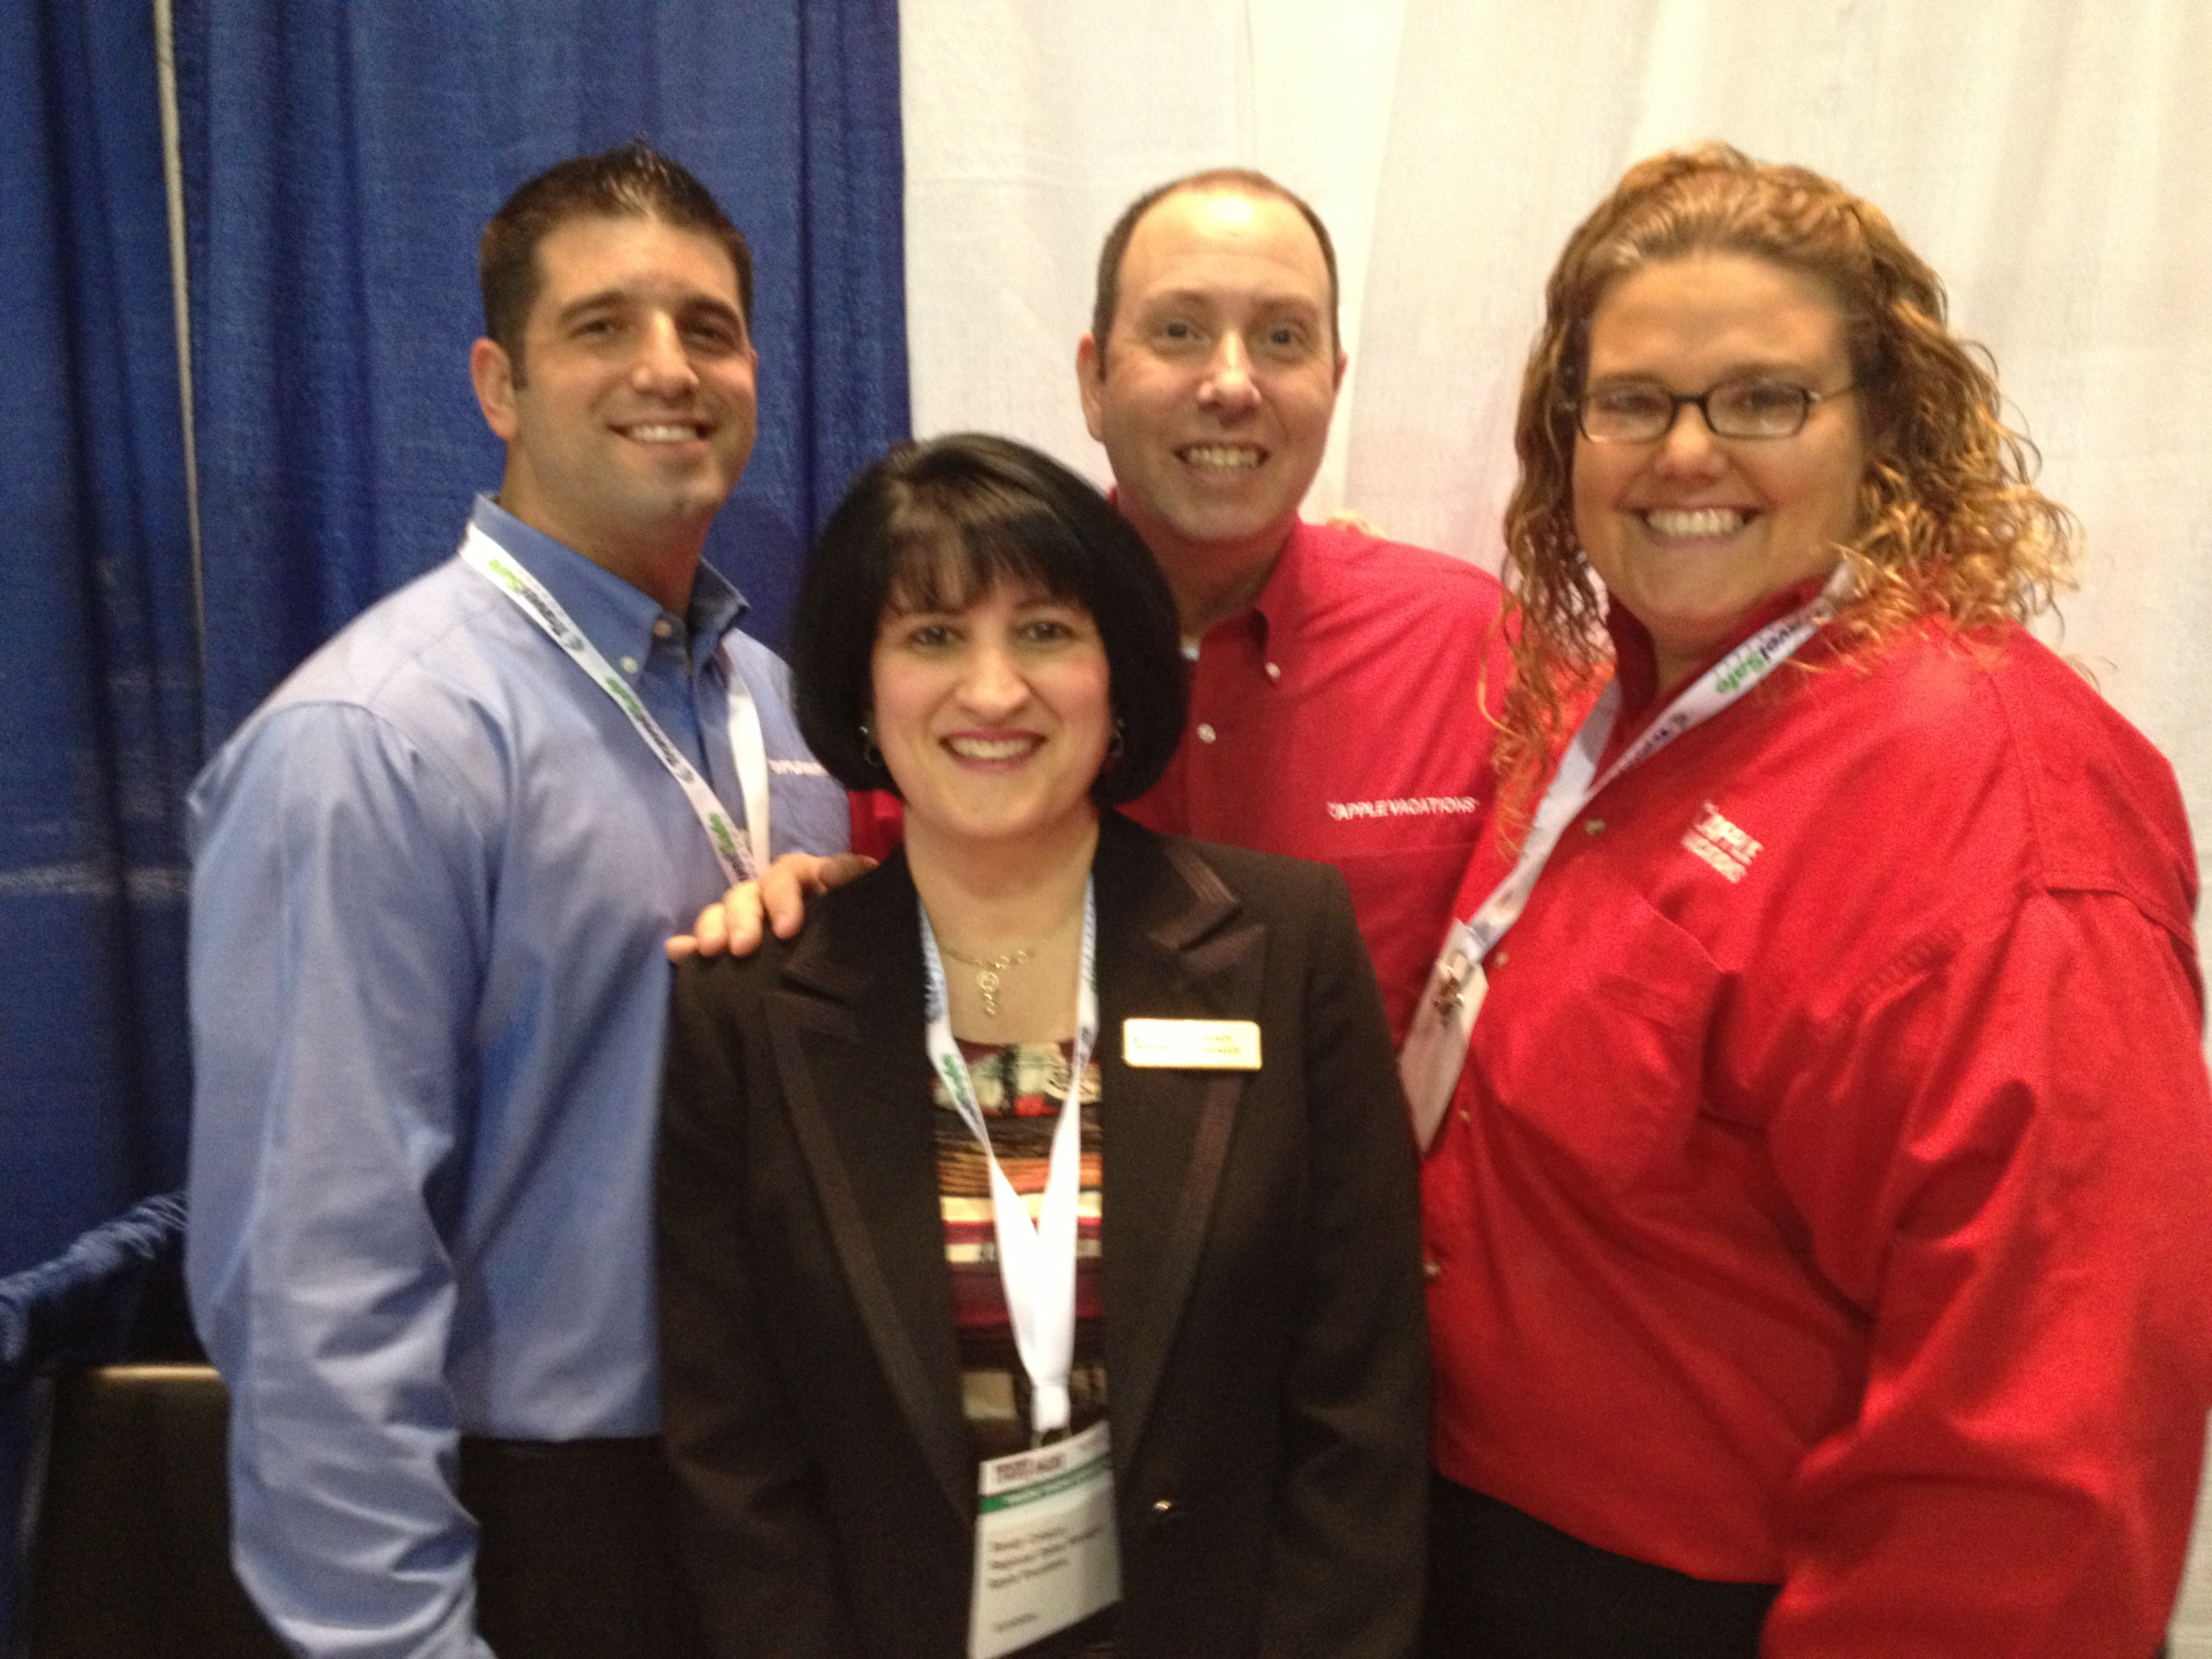 Apple team at the OSSN show in Atlantic City